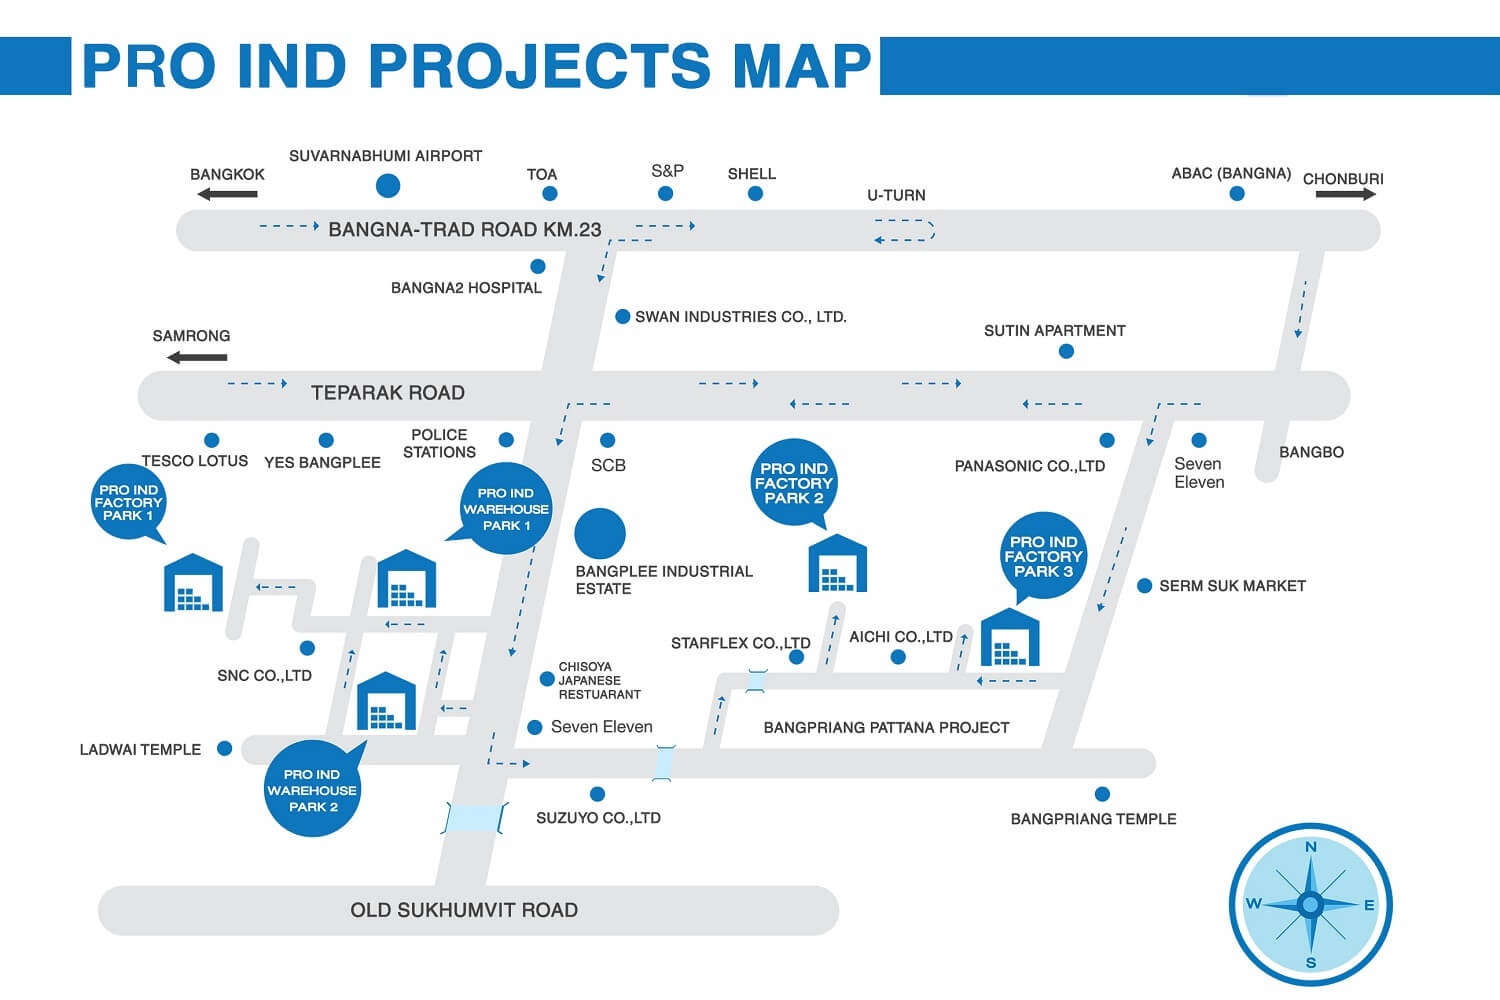 Pro Ind 6 Projects Map